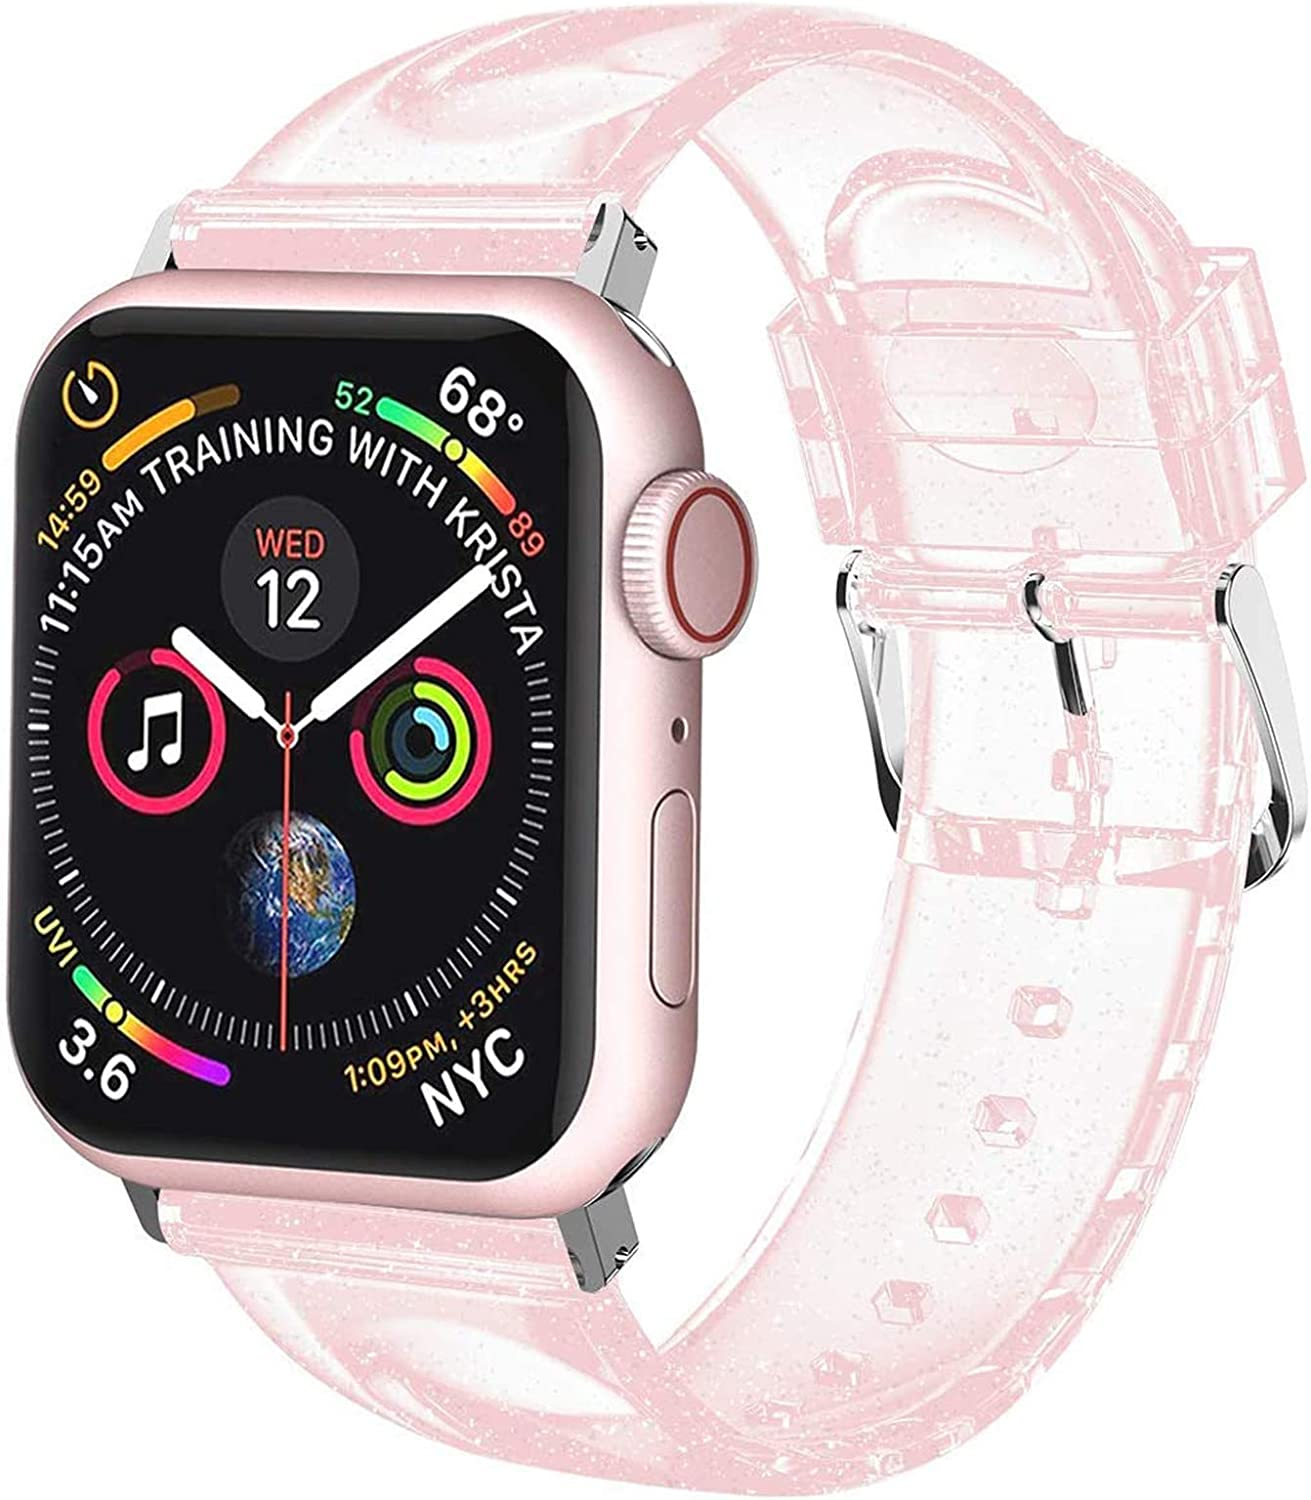 iiteeology Compatible with Apple Watch Band 38mm 40mm, Women Glitter Soft Silicone Sports iWatch Band Strap for Apple Watch Series 6/5/4/3/2/1/SE (38mm 40mm Pink/Silver)